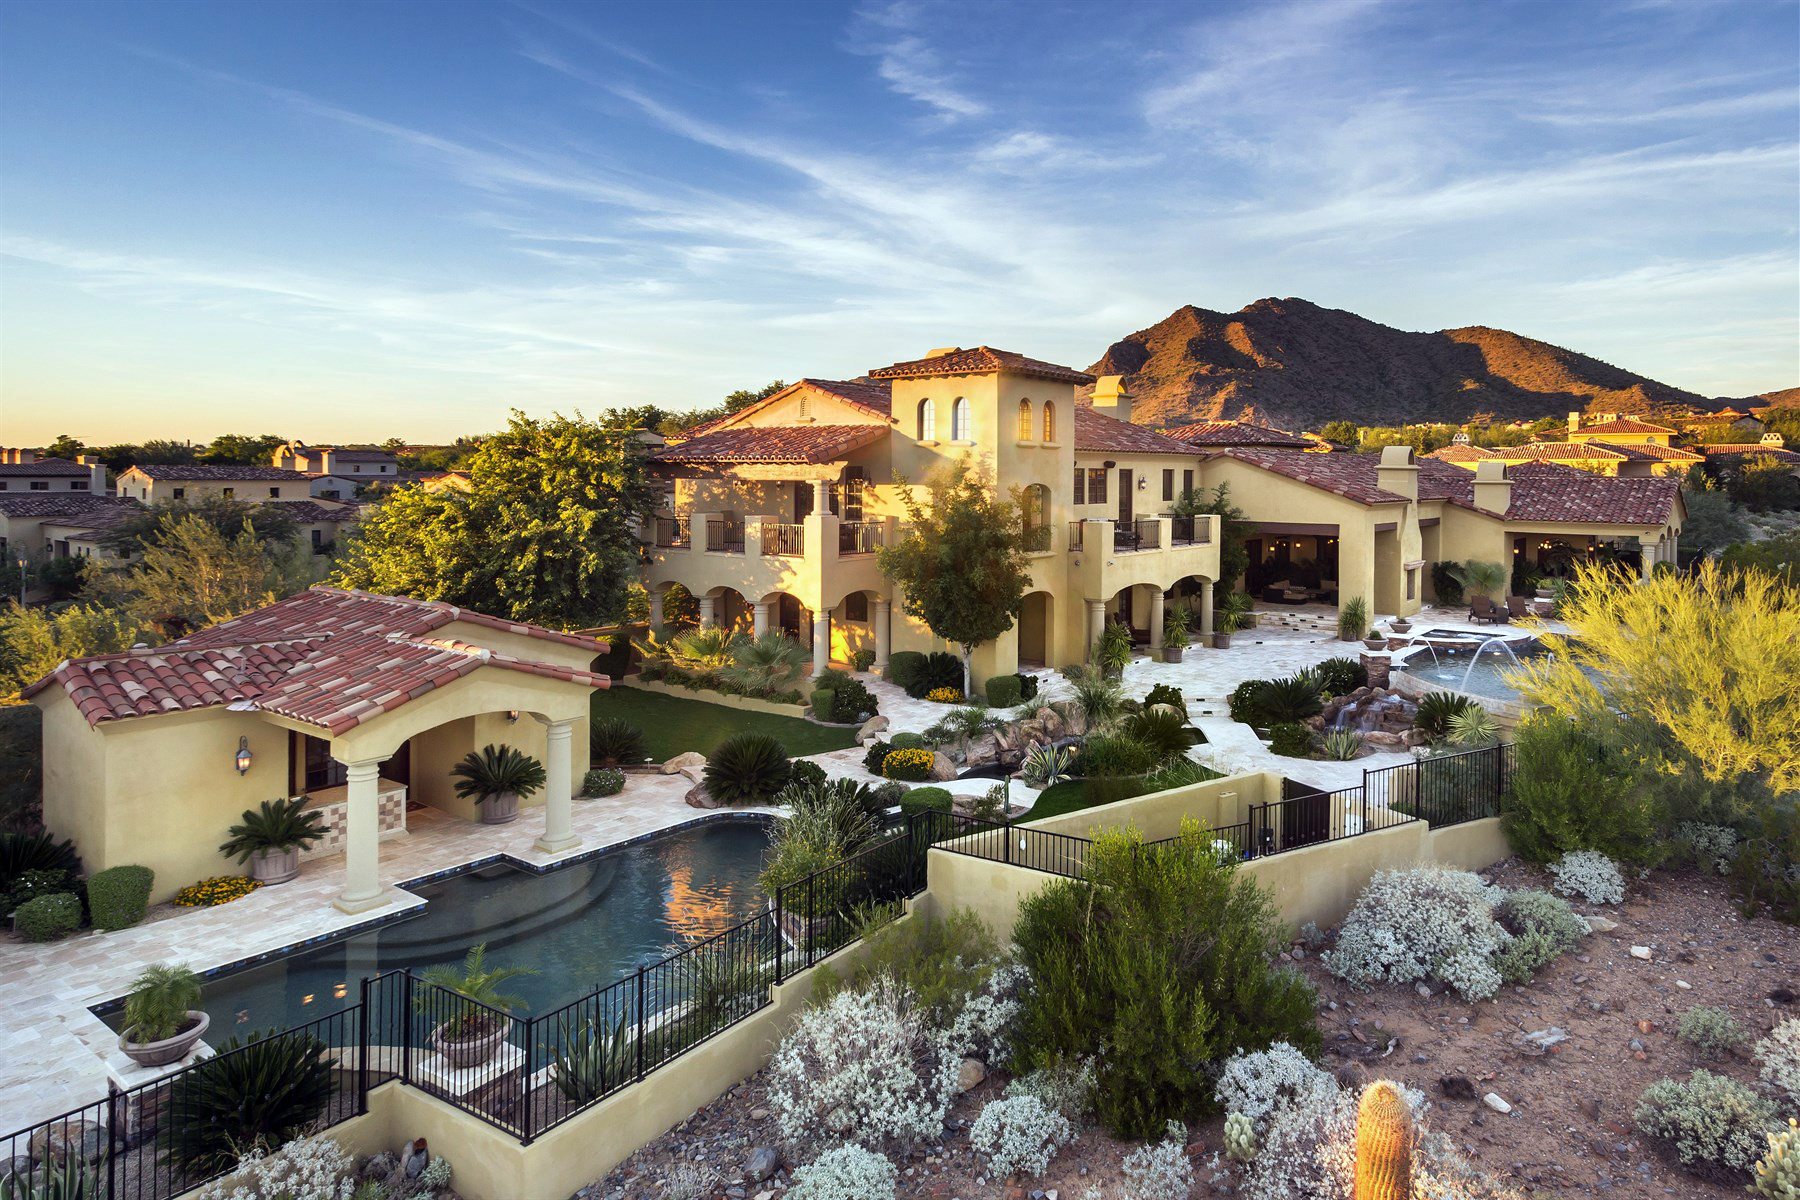 Частный односемейный дом для того Продажа на Deluxe Custom Residence In The Esteemed Exclusive Community Of Silverleaf 10211 E Chino Drive #1149 Scottsdale, Аризона 85255 Соединенные Штаты